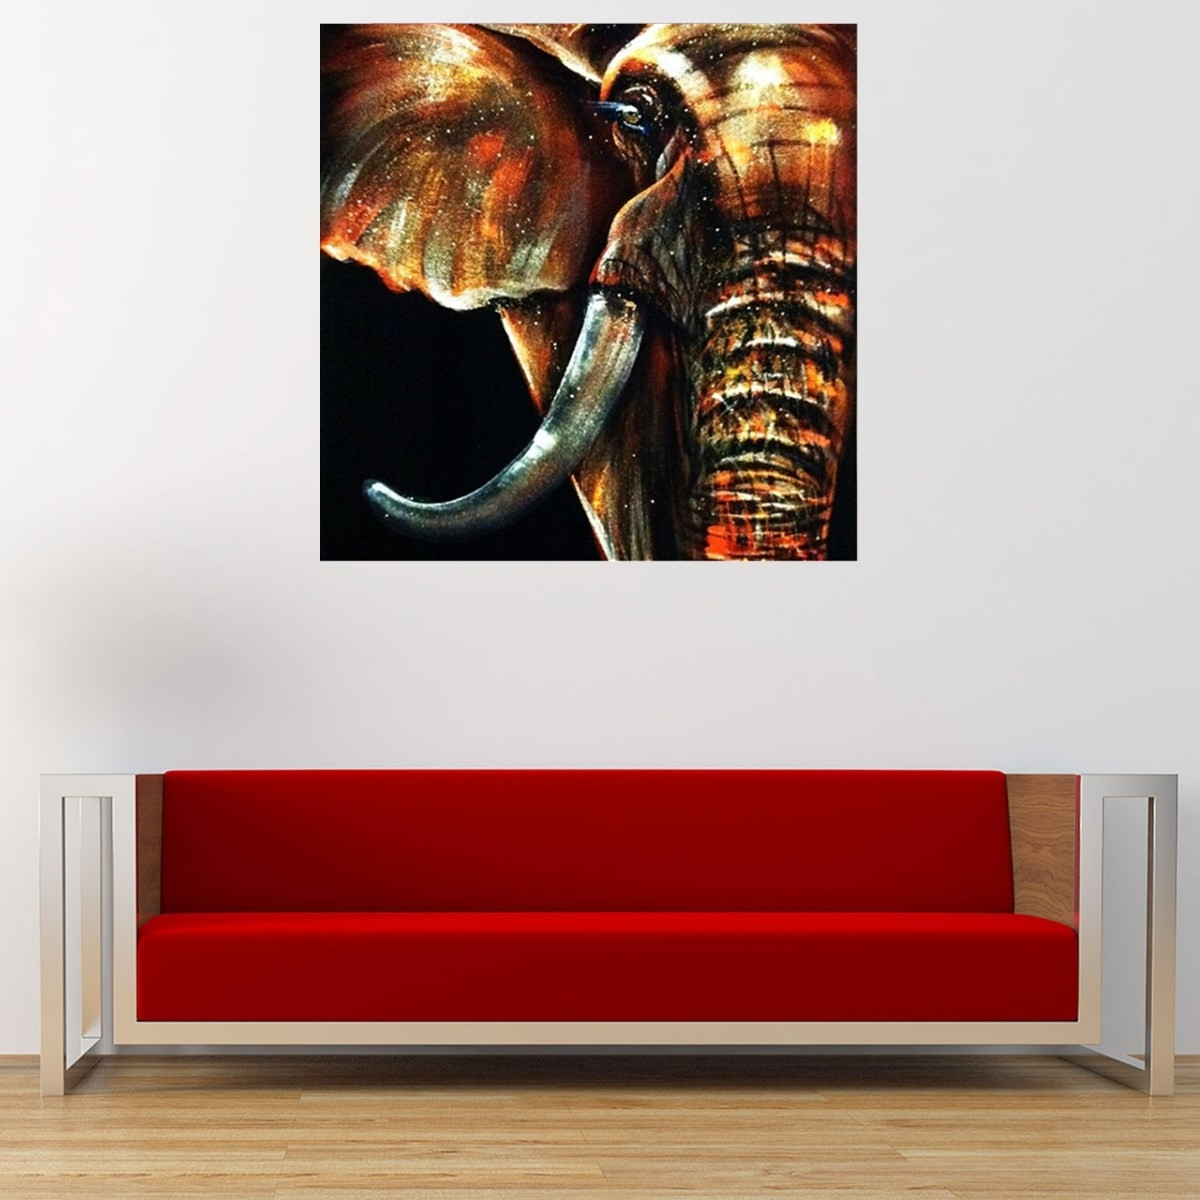 50x50cm Modern Abstract Huge Elephant Wall Art Decor Oil Painting On For Elephant Wall Art (View 12 of 20)